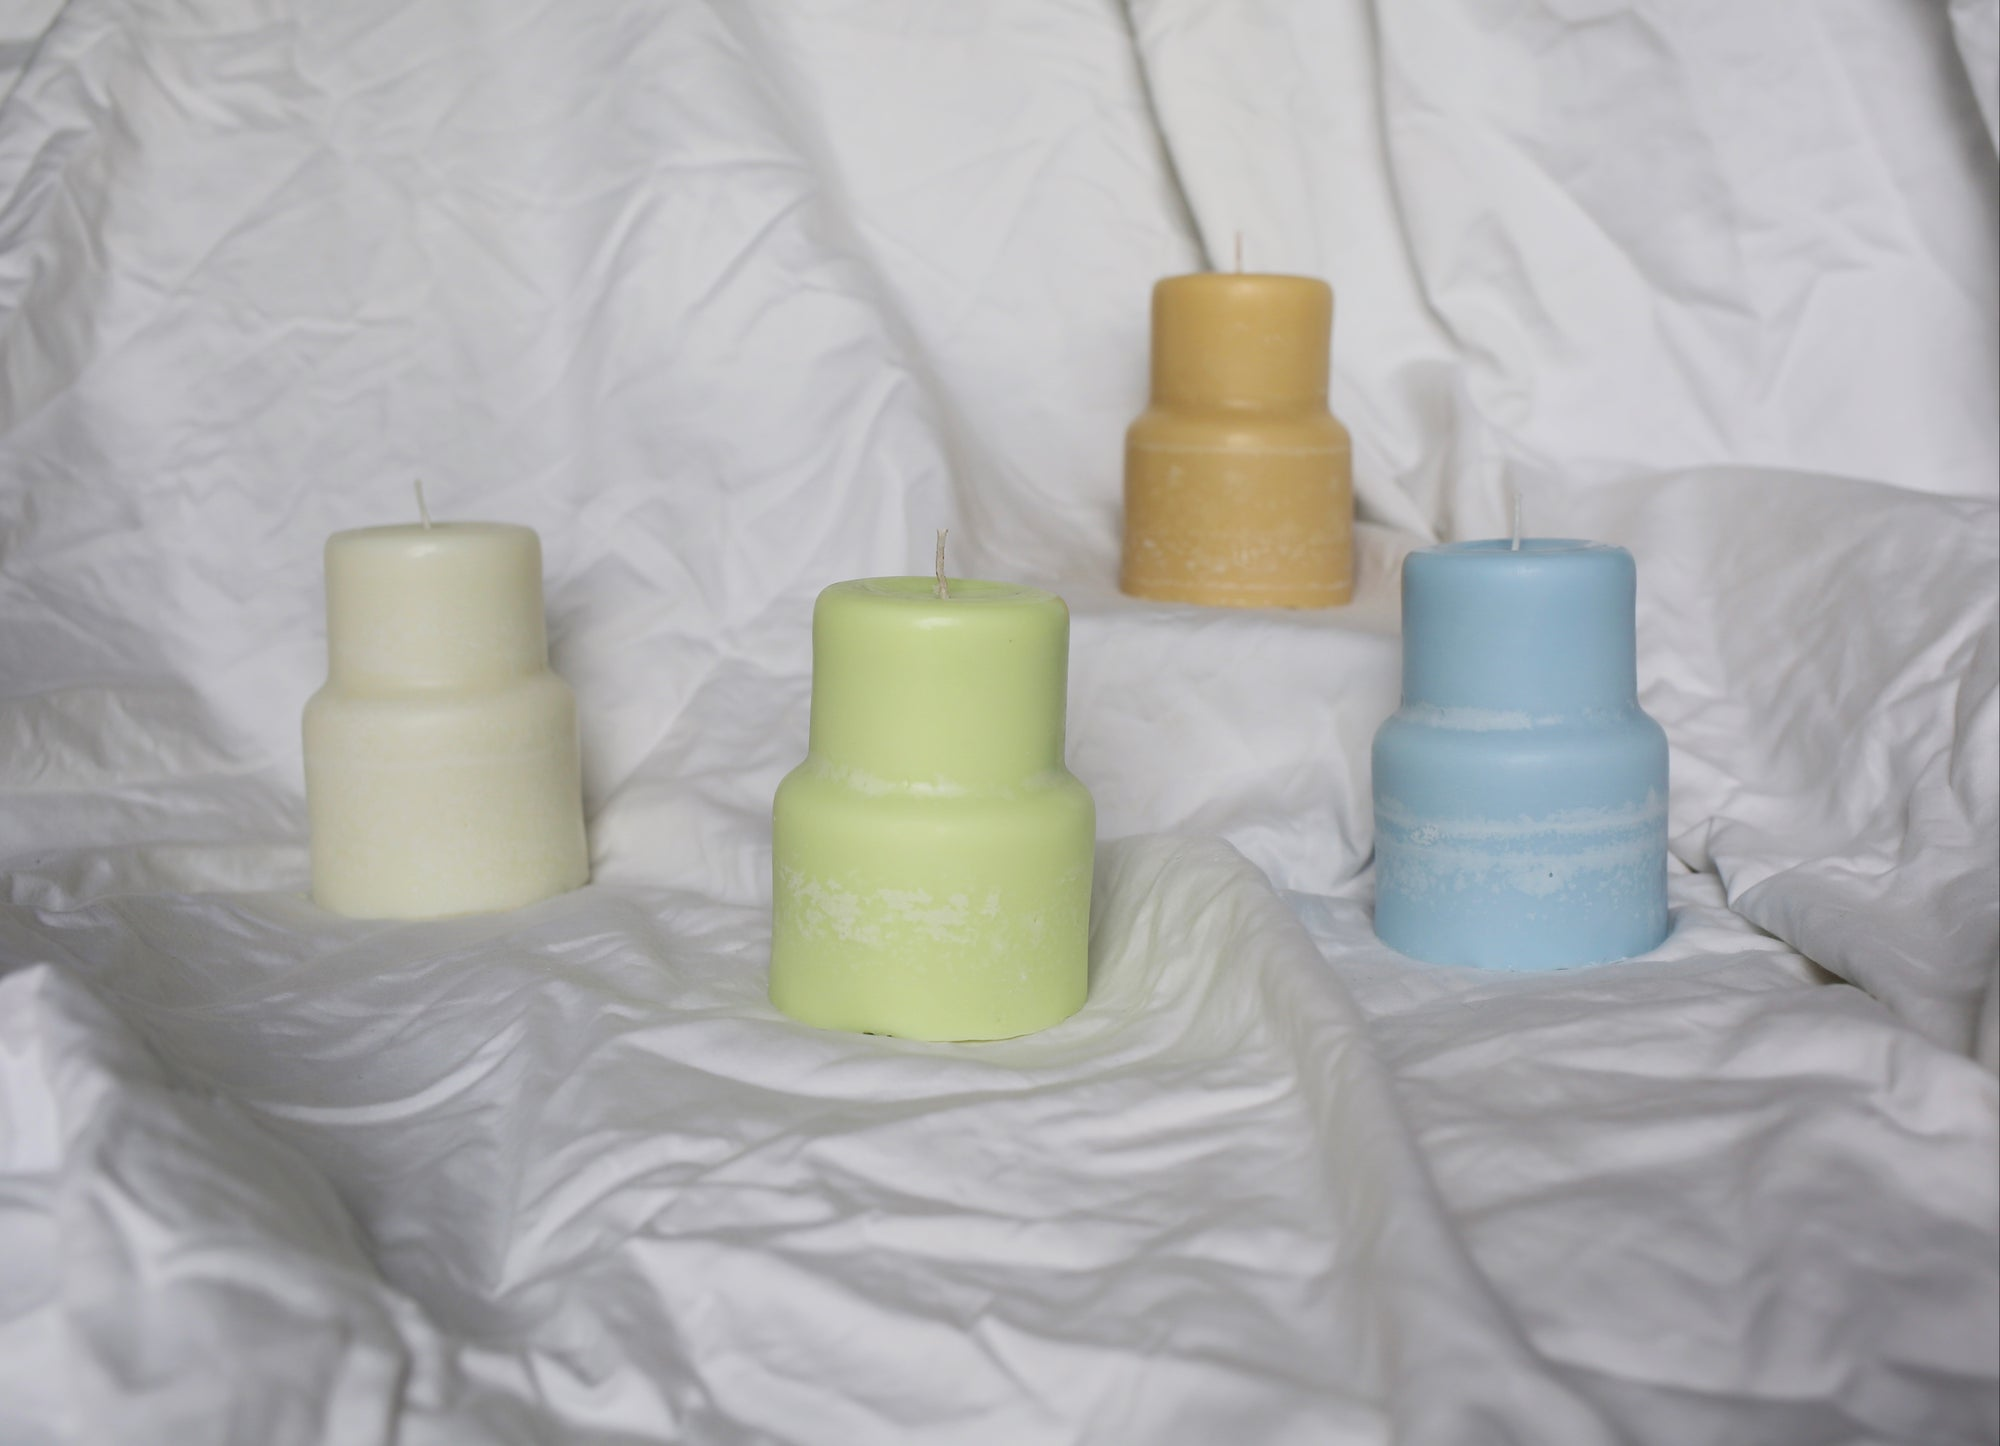 Image of the myrtle candle